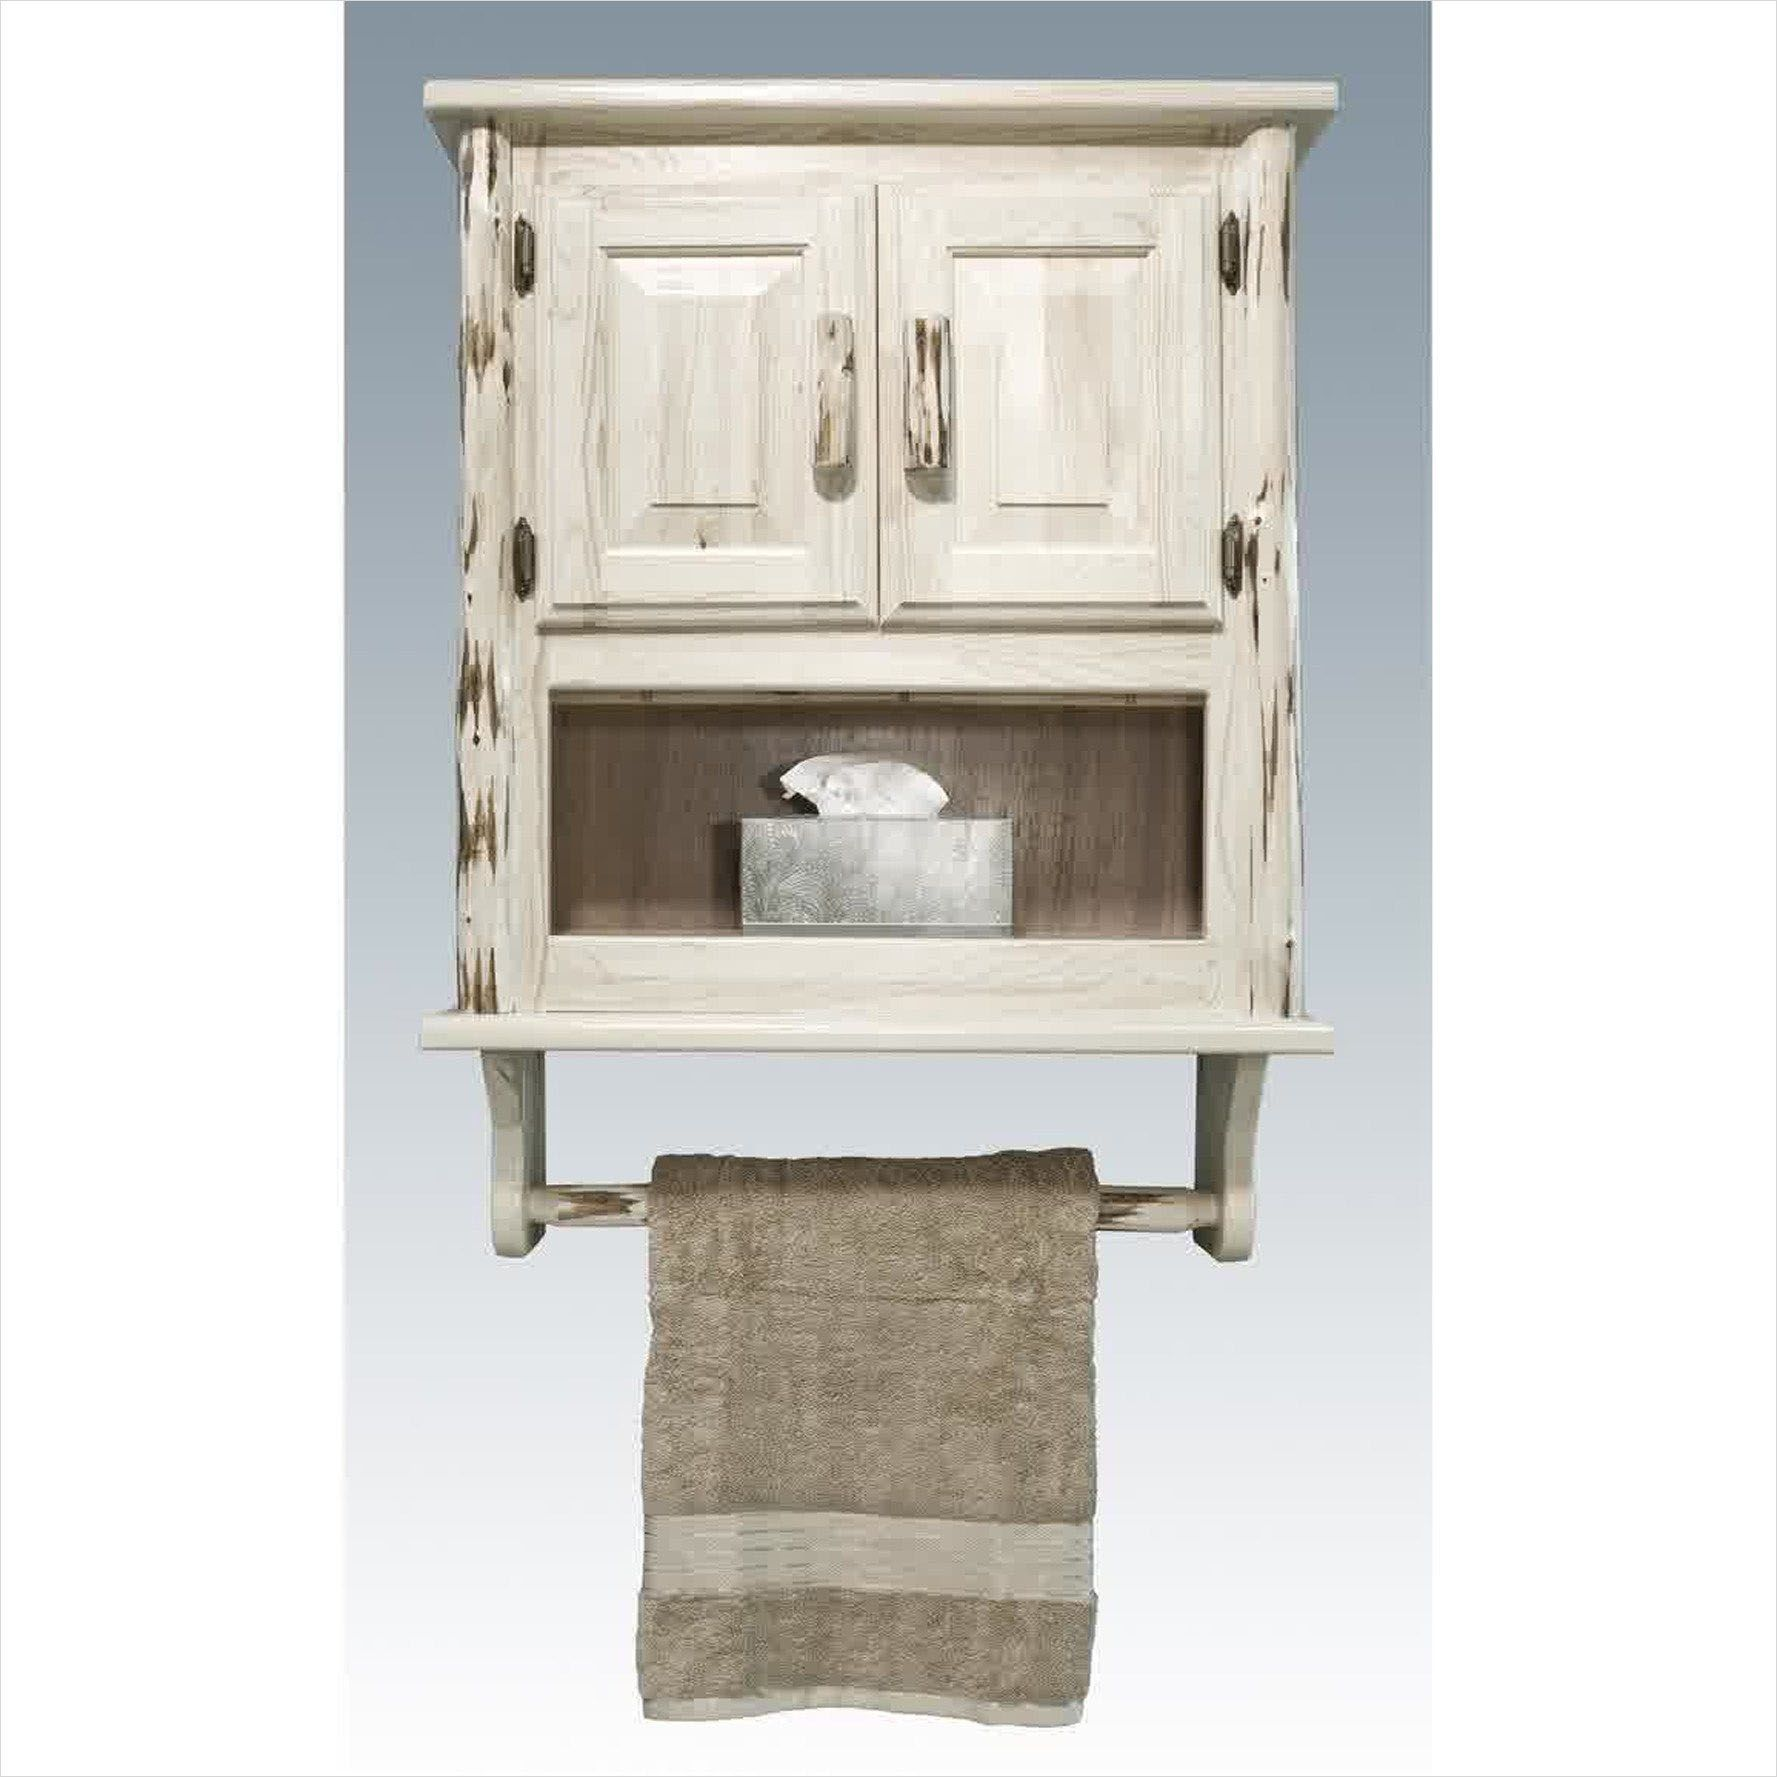 Restroom Storage Cabinets That Will Assist You Keep Every Thing Organized Bathroom Wall Storage Cabinets Rustic Bathroom Cabinet Bathroom Wall Storage